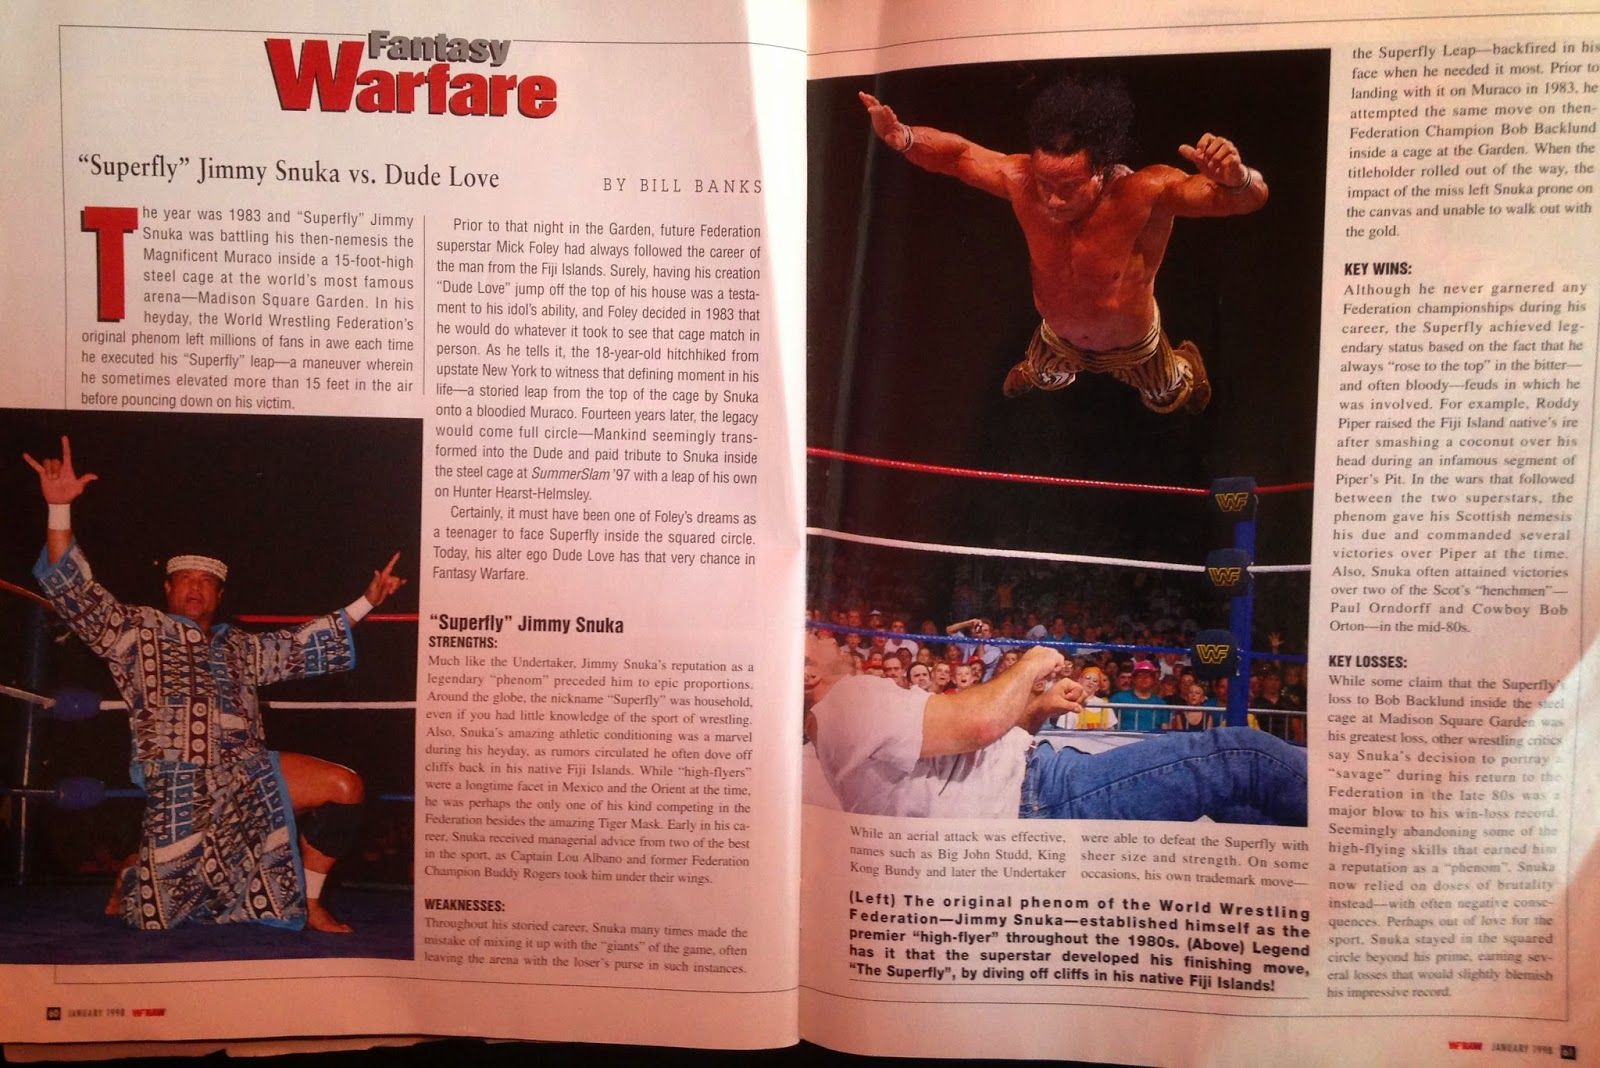 WWE: WWF RAW MAGAZINE - January 1998 - Dude Love vs. Jimmy Snuka fantasy warfare